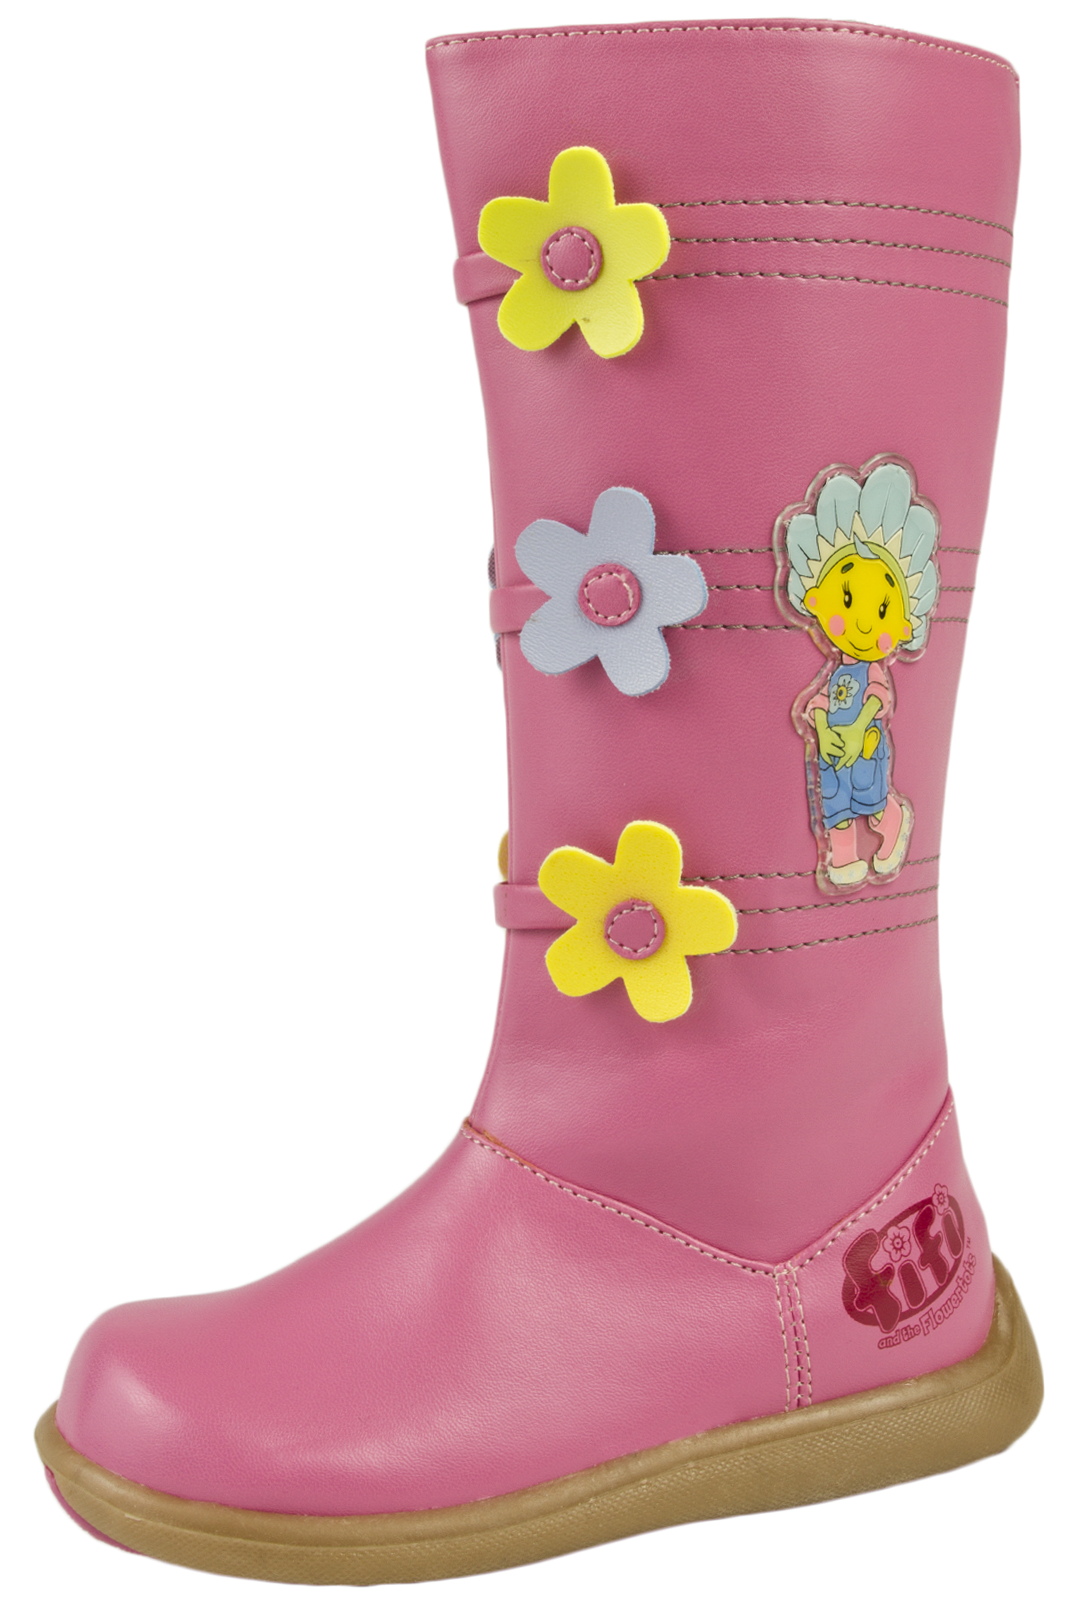 Girls fifi and the flowertots knee high boots faux leather pink girls fifi and the flowertots knee high boots faux leather pink flower shoes mightylinksfo